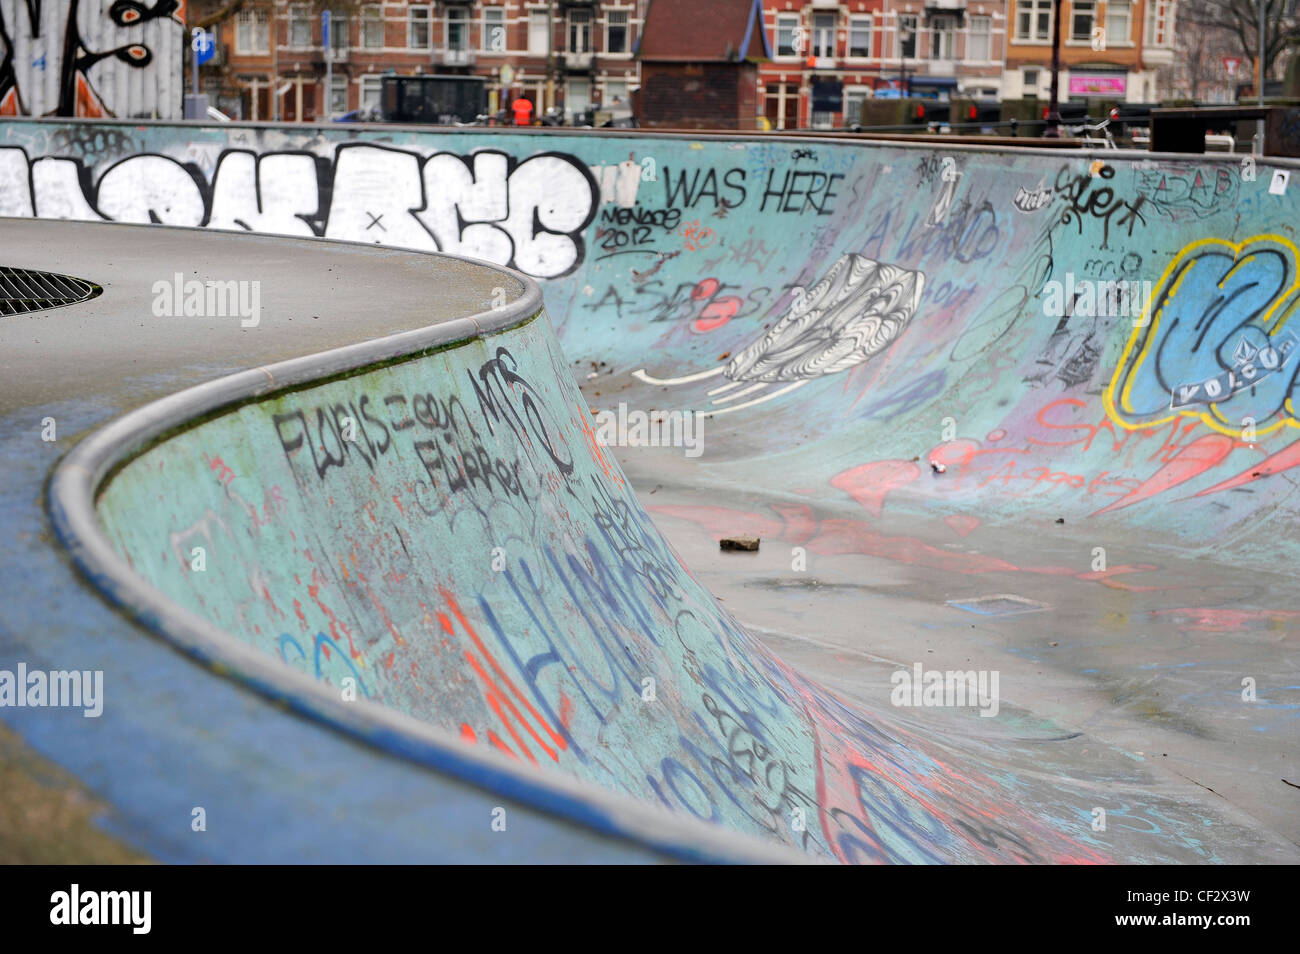 Graffiti on the walls of a bowl in a skatepark. Amsterdam, Netherlands. - Stock Image